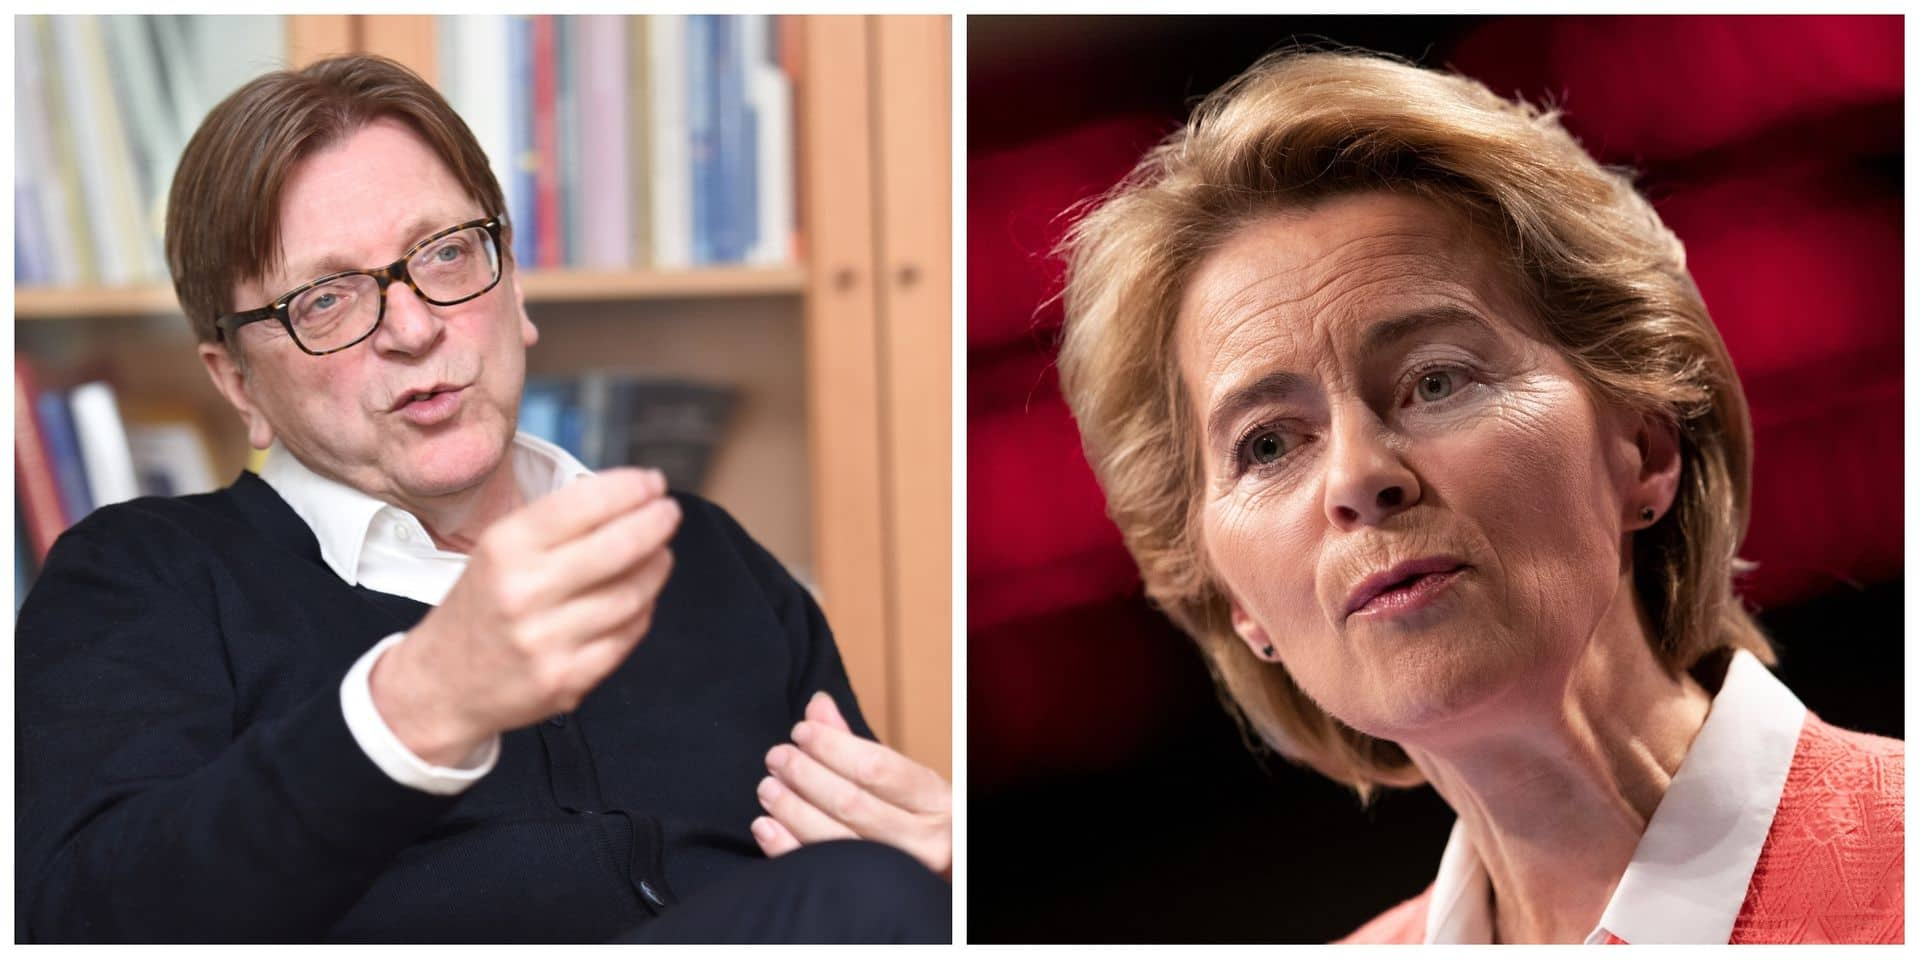 """Protection du mode de vie européen"" à la Commission: Guy Vergofstadt menace Ursula von der Leyen"